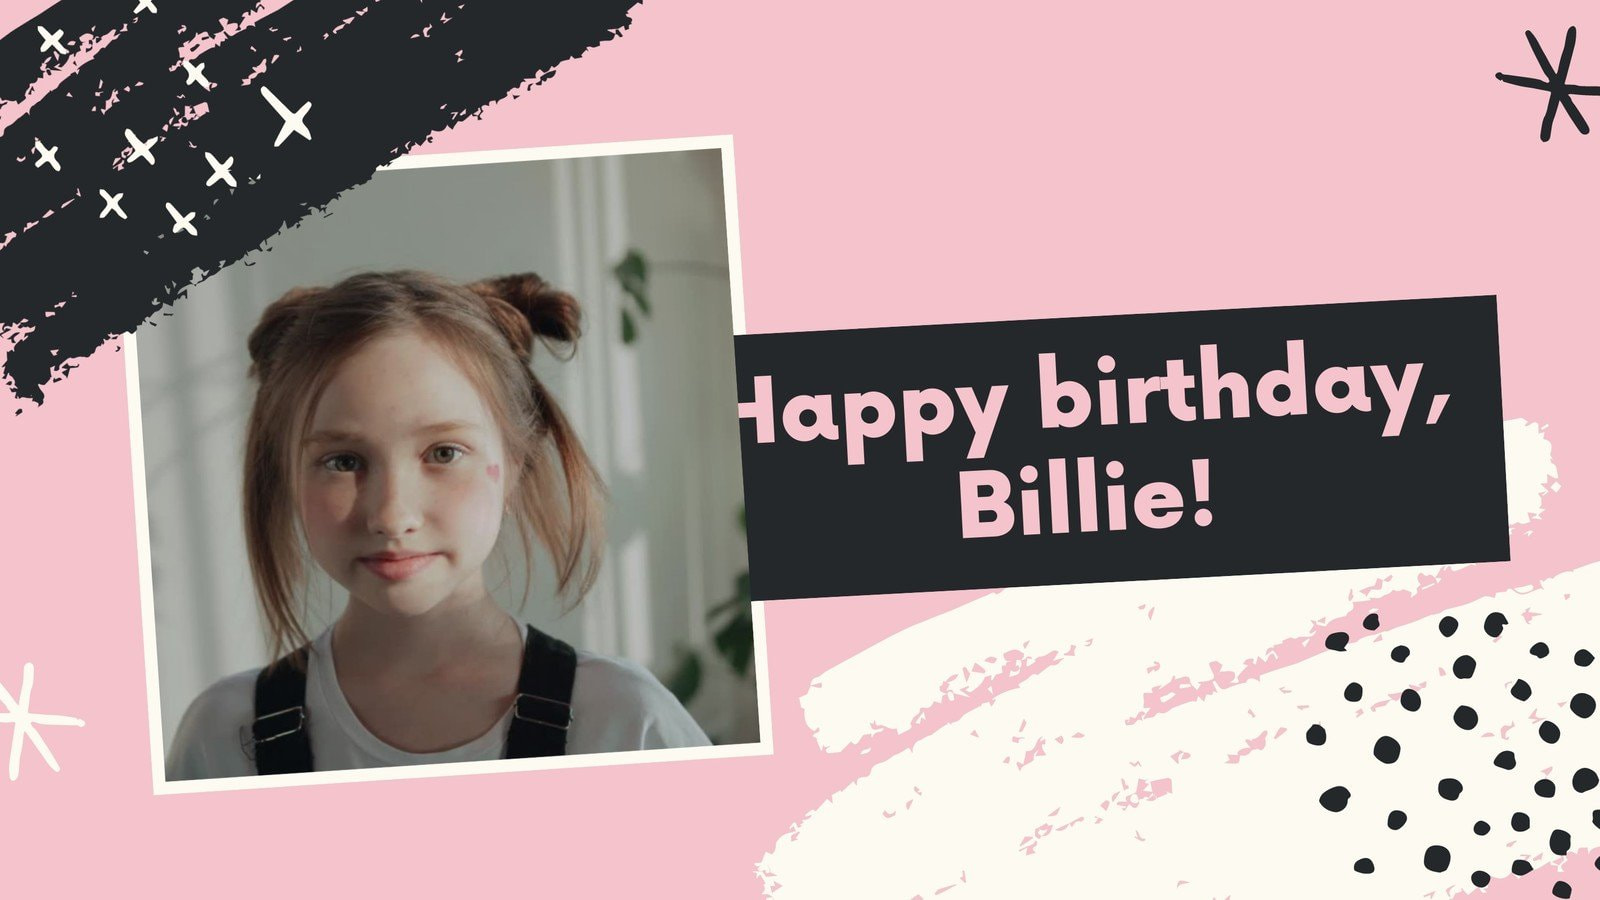 Pink and Black Girl Shapes Scribbles & Brushes Birthday Greetings Slideshow Video